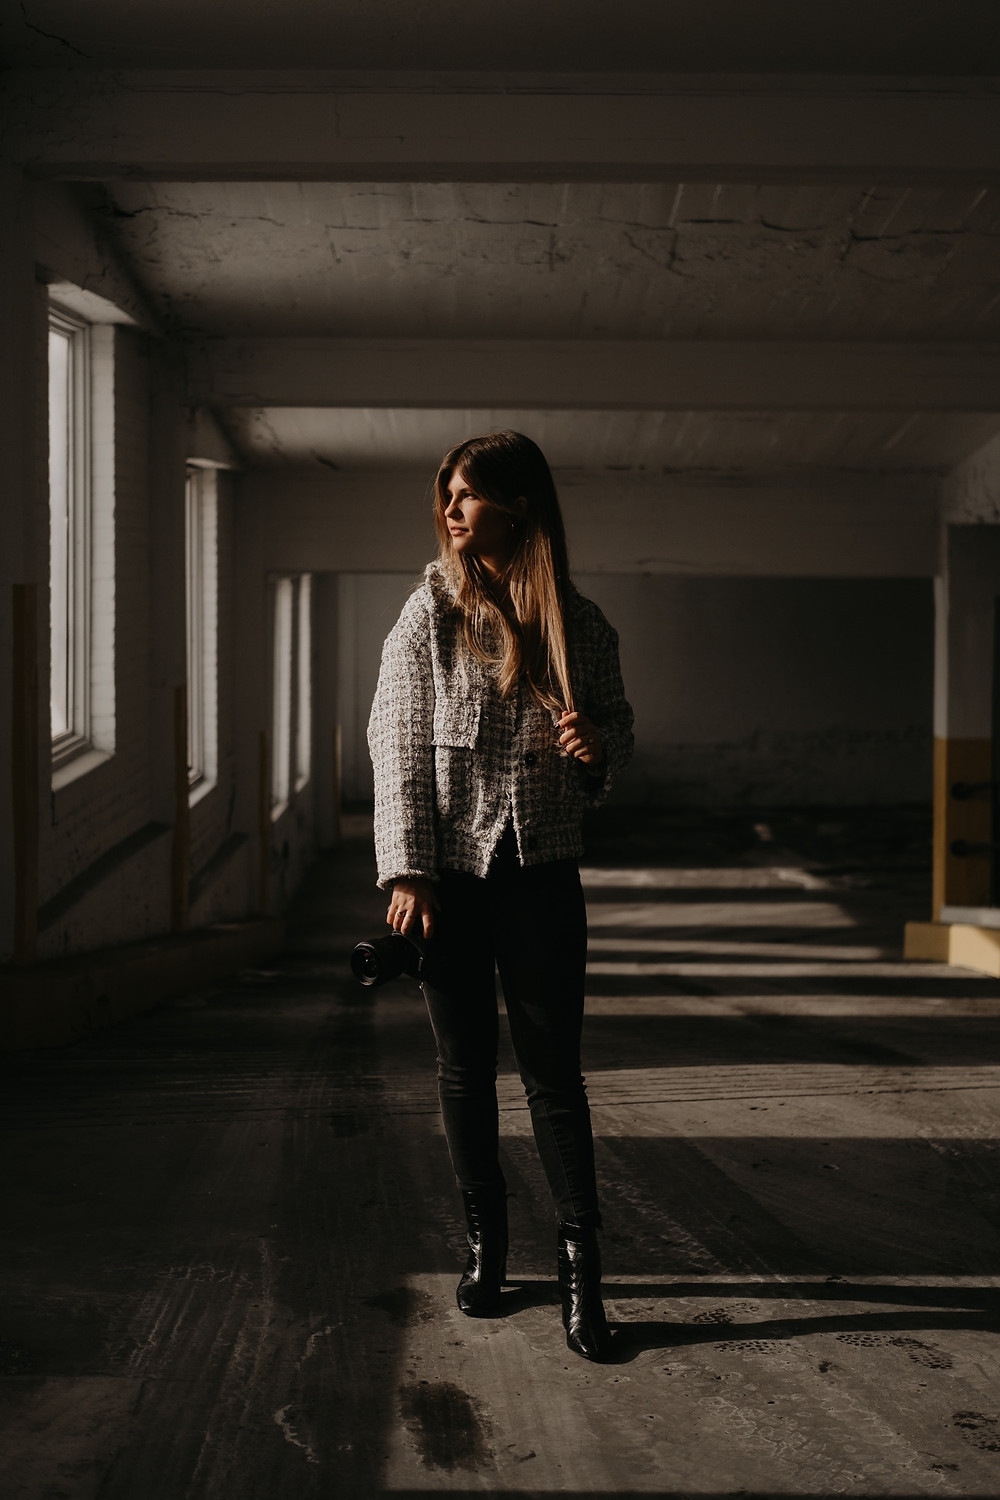 Moody parking garage portrait in Metro Detroit. Photographed by Nicole Leanne Photography.